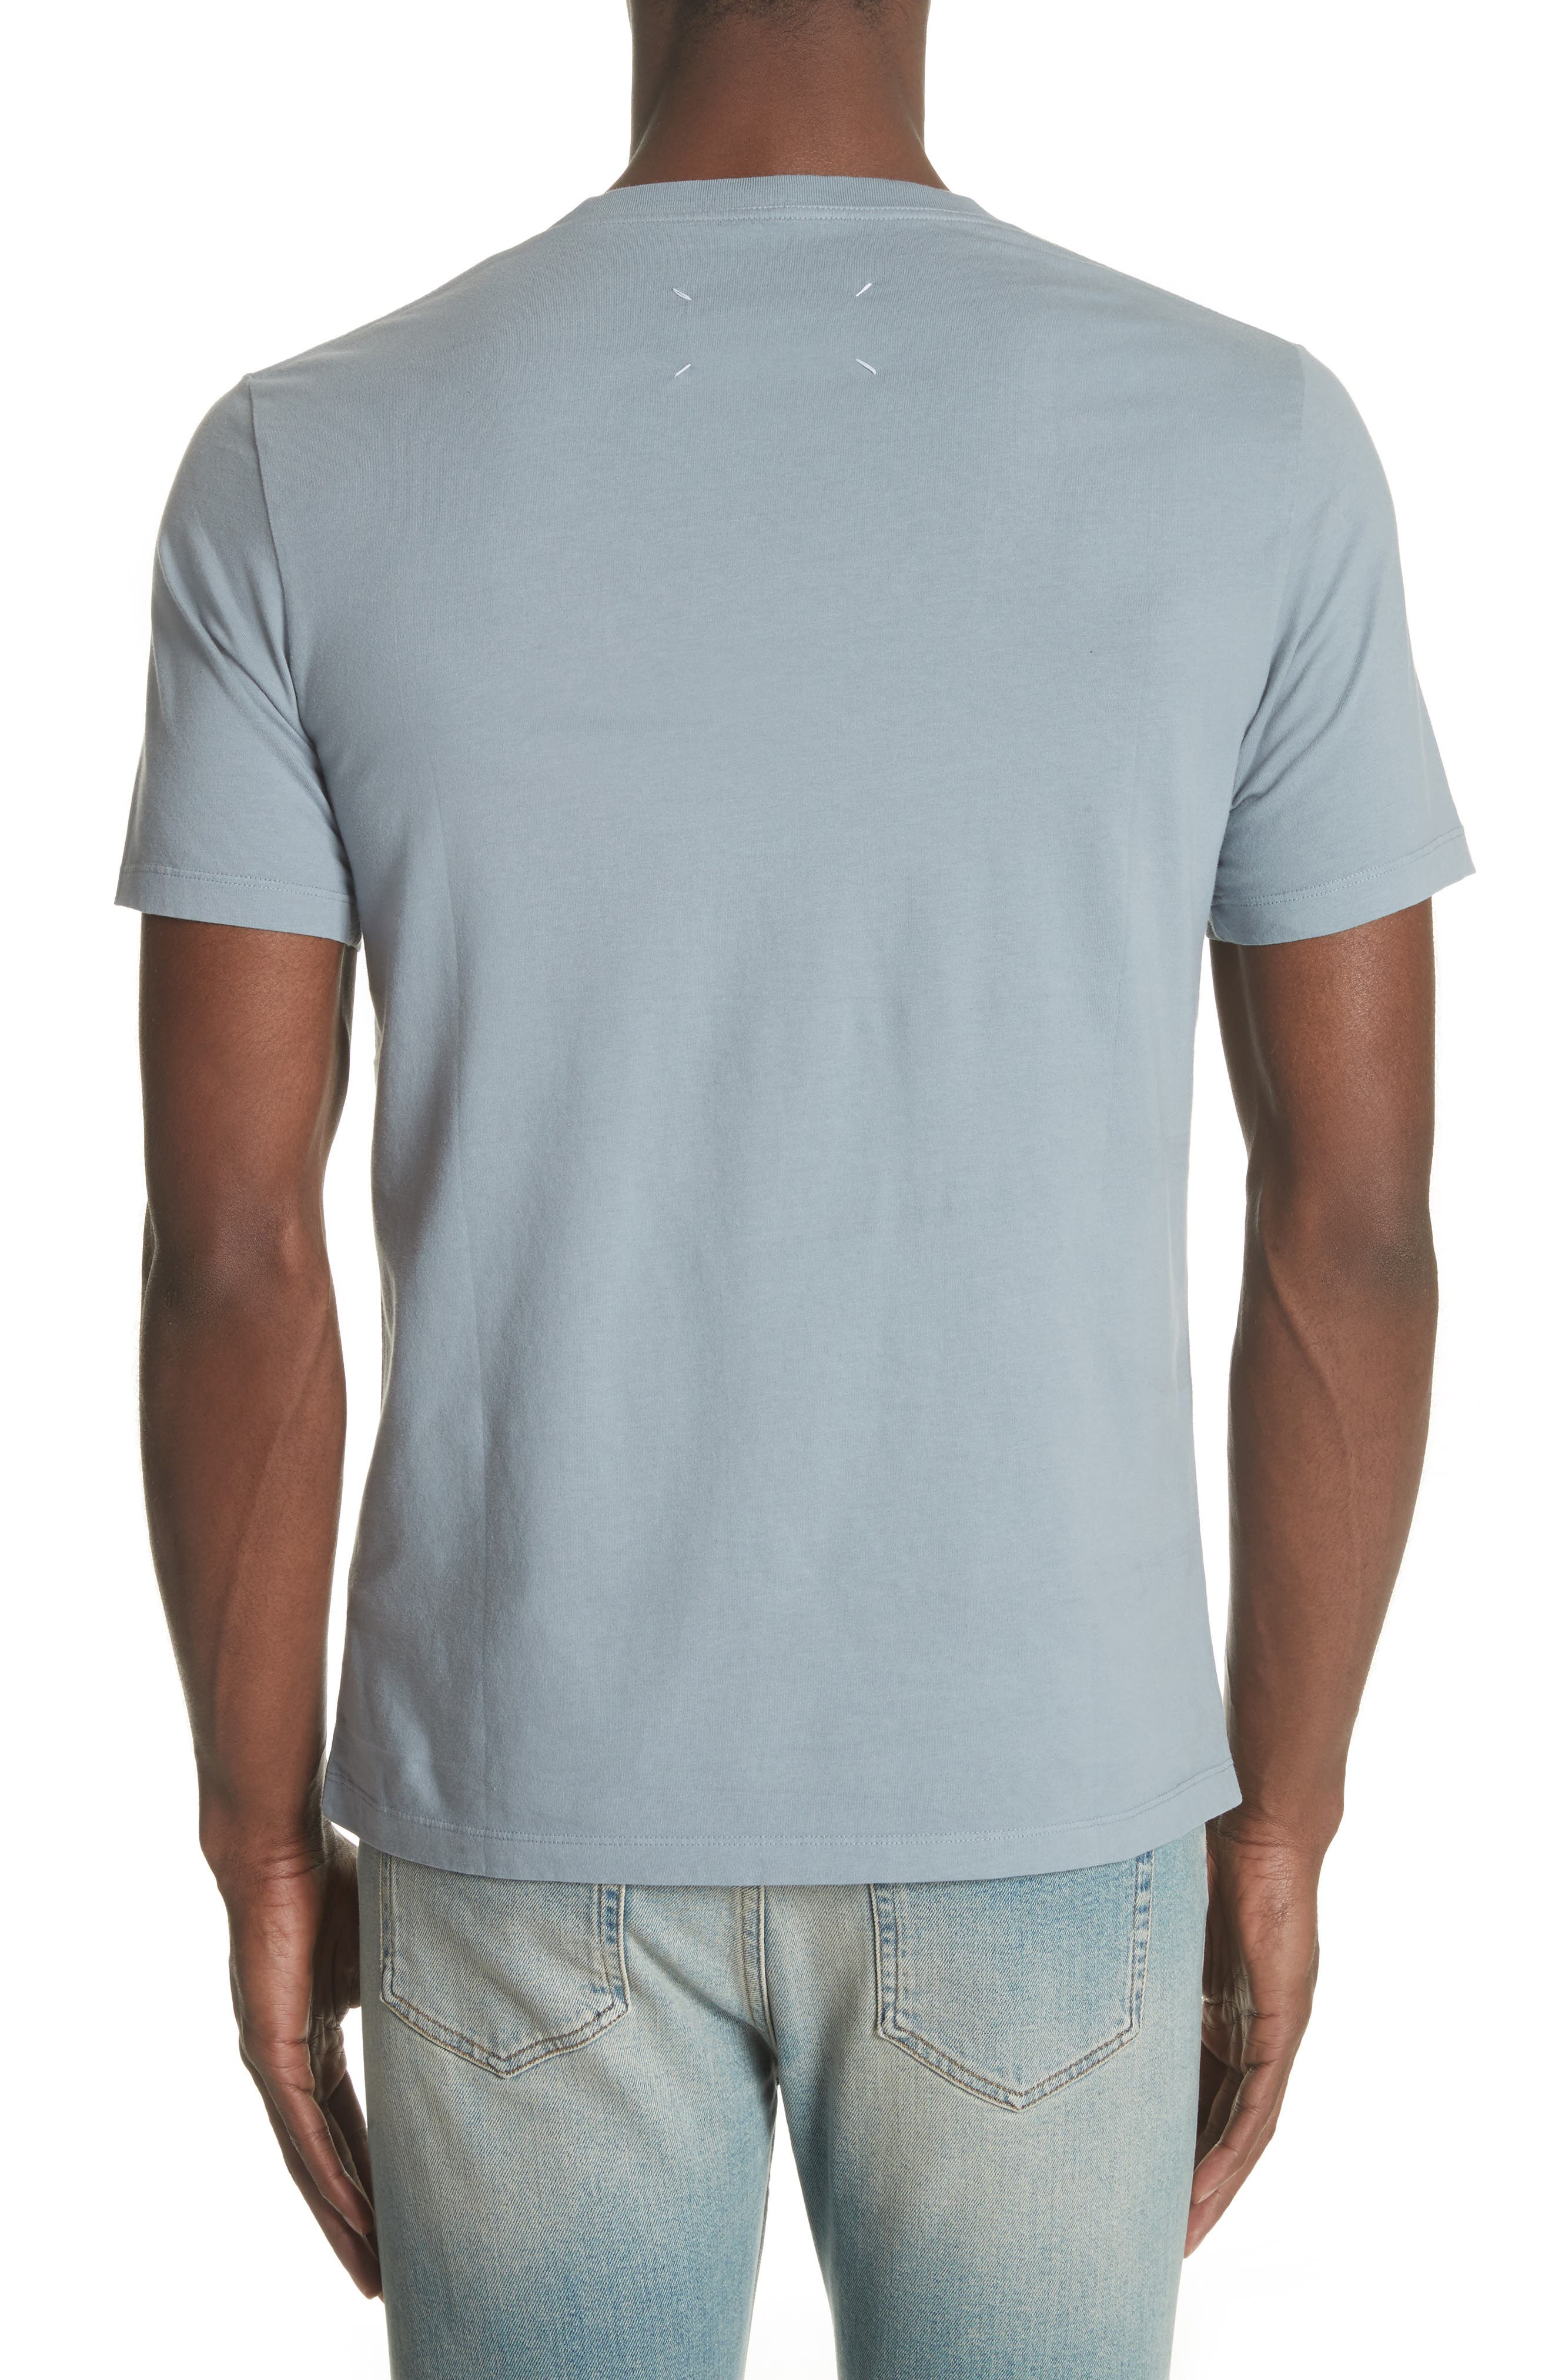 Stereotype Pocket T-Shirt,                             Alternate thumbnail 2, color,                             020